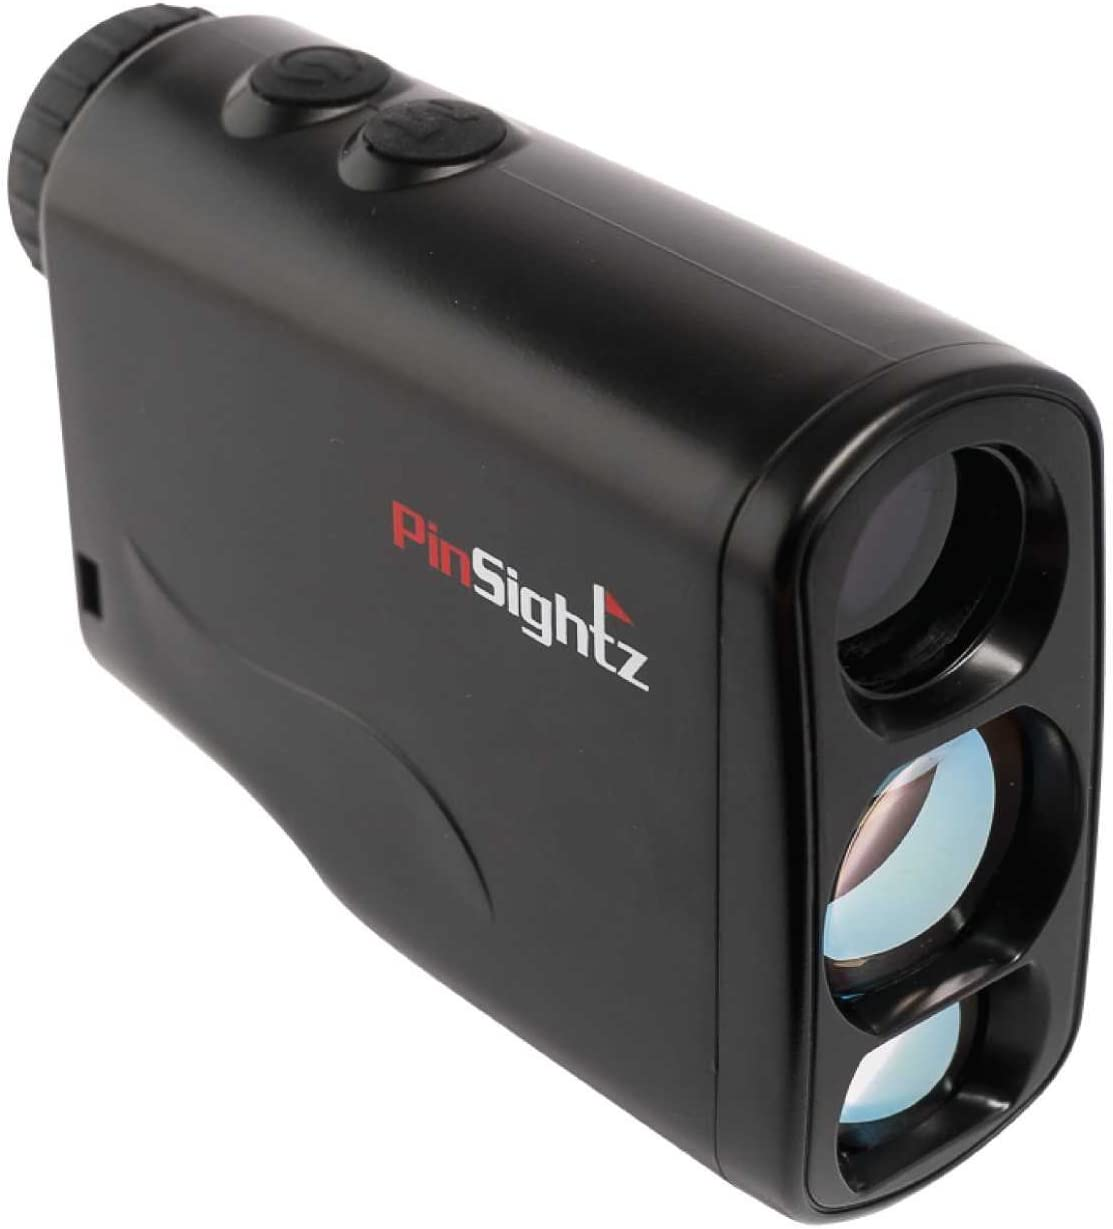 PinSightz Golf Range Finder (Laser Accurate) Distance, Slope, Speed, Height, and Ranging